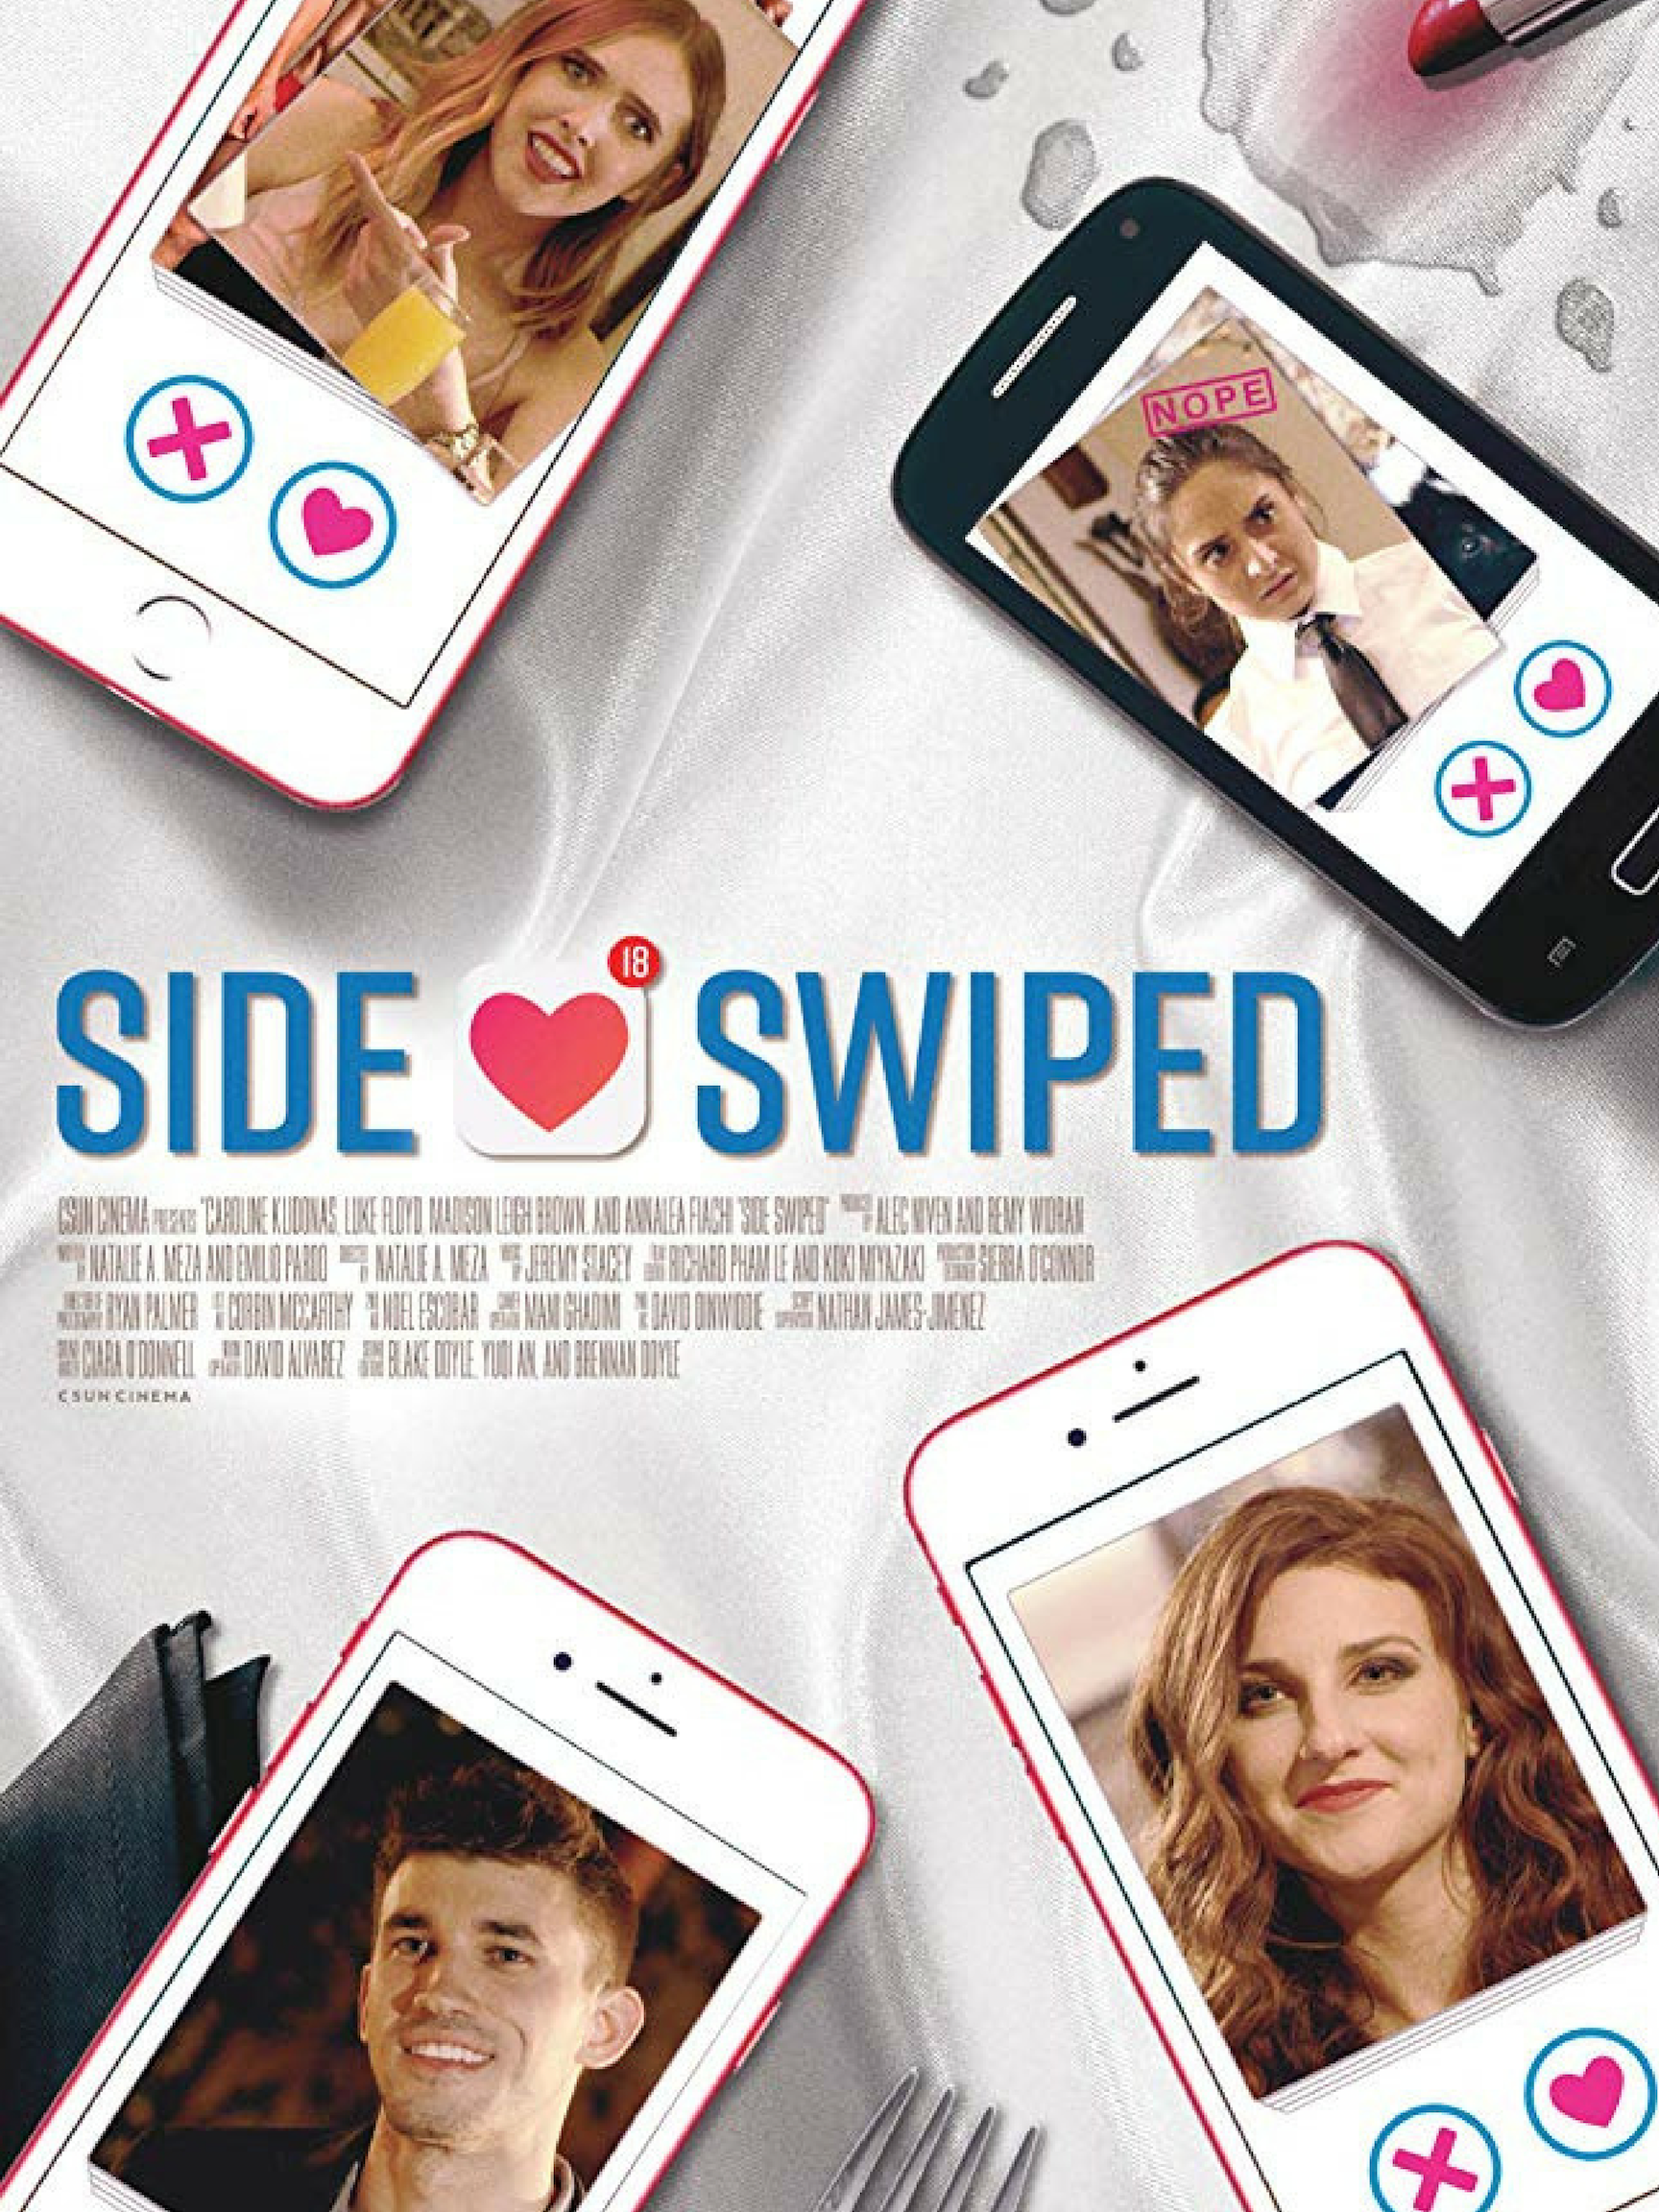 Indie Film Premiere - Side Swiped, in which Caroline plays the lead, is one of five films selected to premiere at the Samuel Goldwyn Theatre at the Academy of Motion Picture of Arts and Sciences.